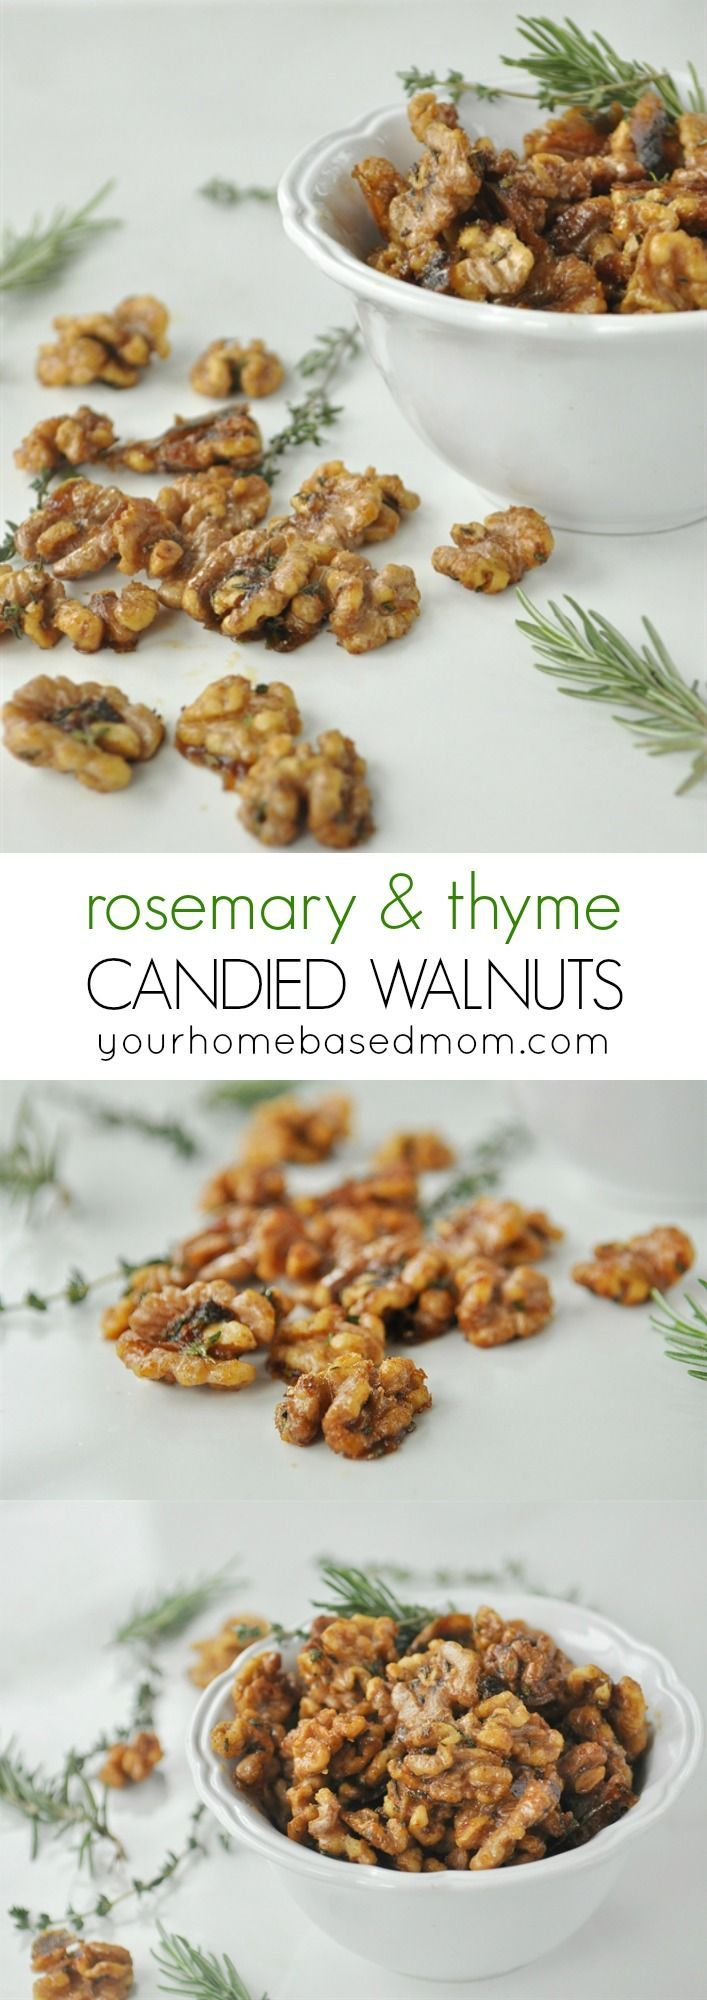 Rosemary & Thyme Candied Walnuts Recipe - These are delicious and could be called a triple threat – they are savory, sweet and have a little heat!  The perfect treat for Christmas gift giving!